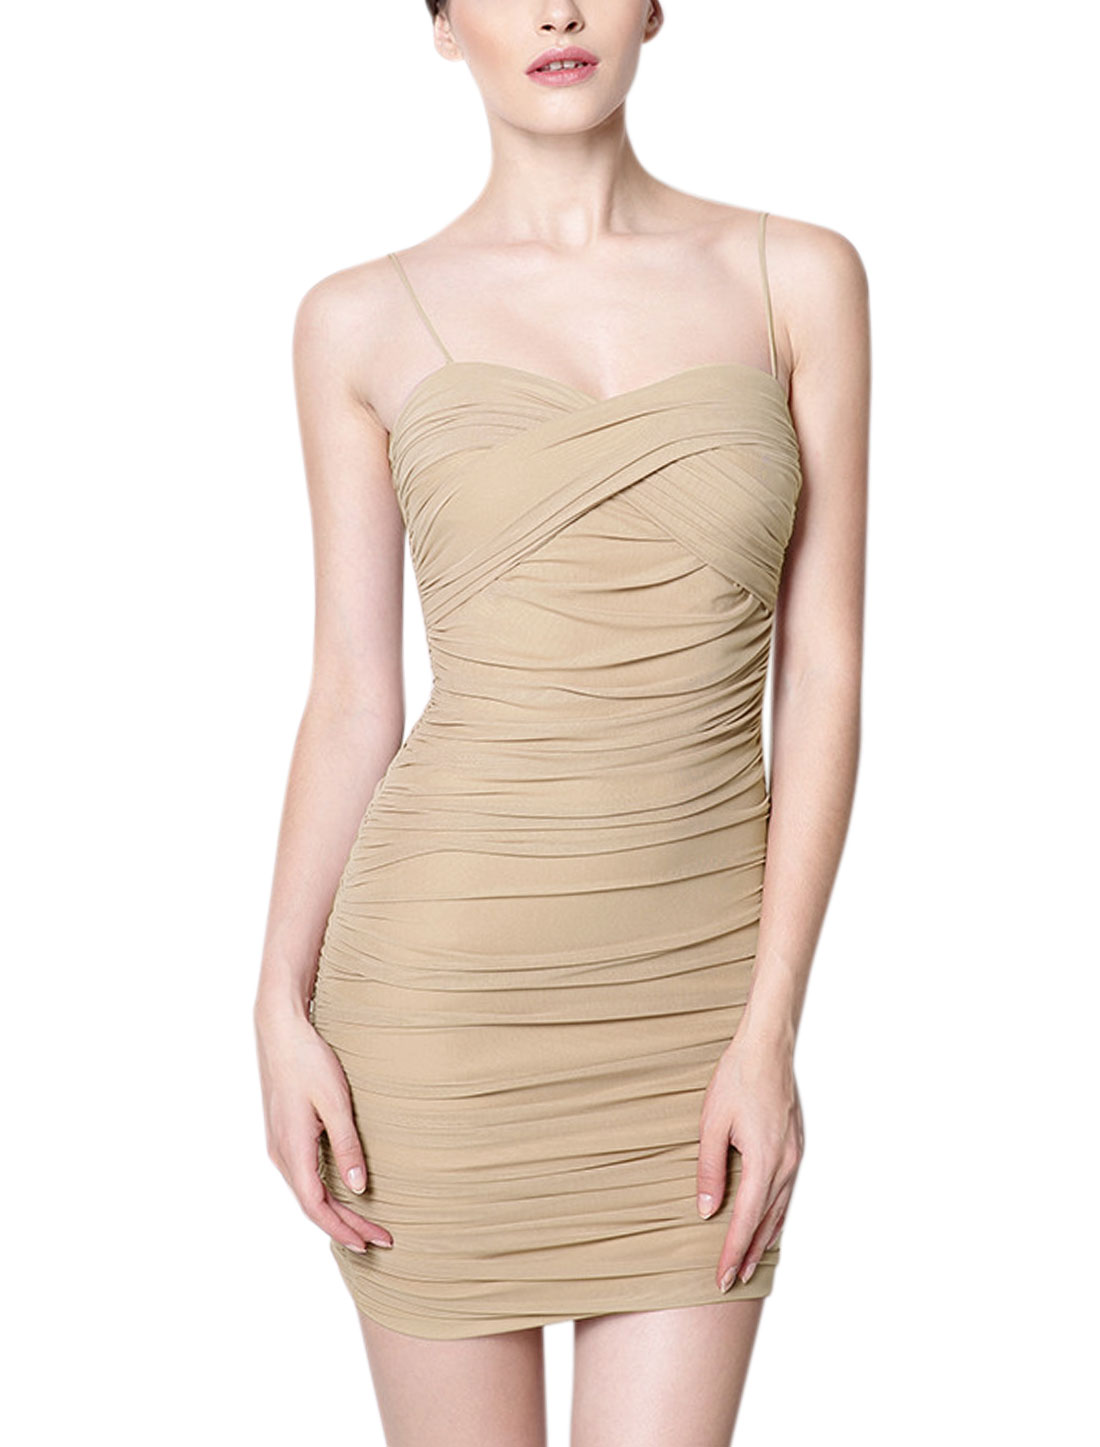 Ladies Sweetheart Neckline Fully Lined Casual Bodycon Dress Beige S